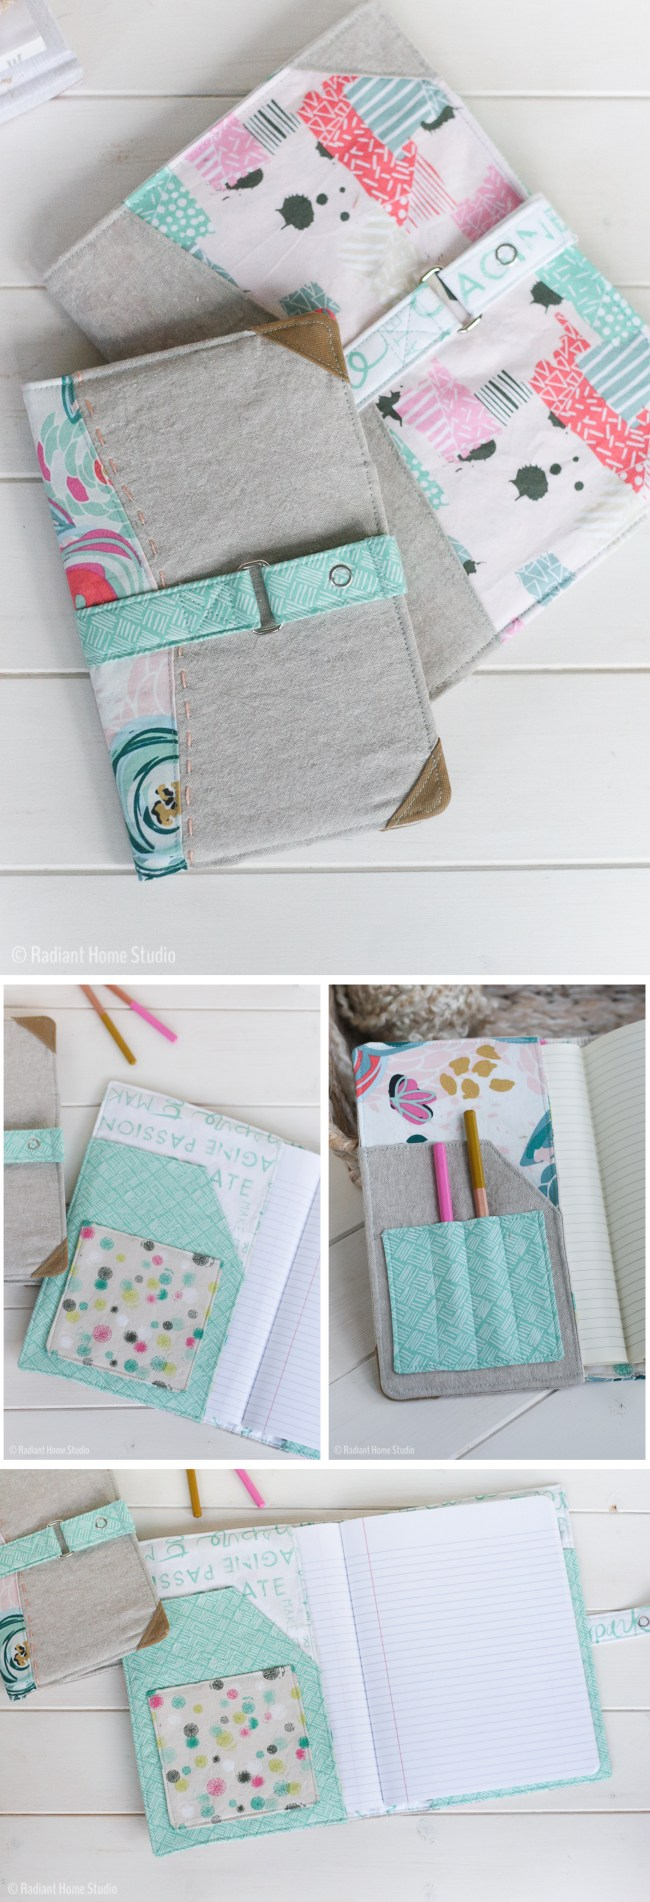 Chalk and Paint Notebook Cover | Radiant Home Studio